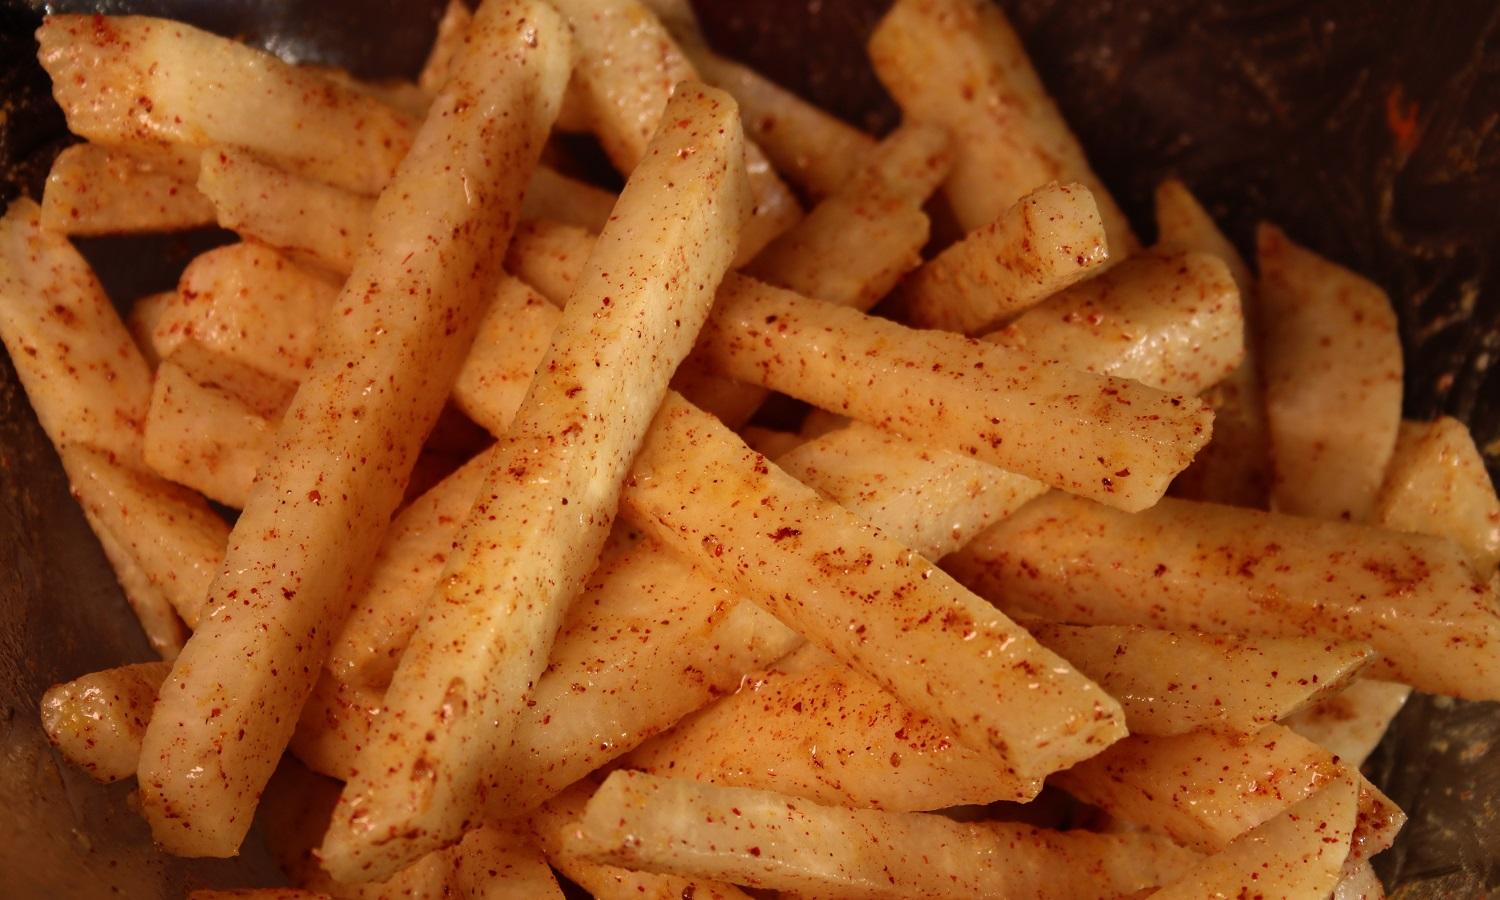 Keto Jicama French Fries Keto Meals And Recipes